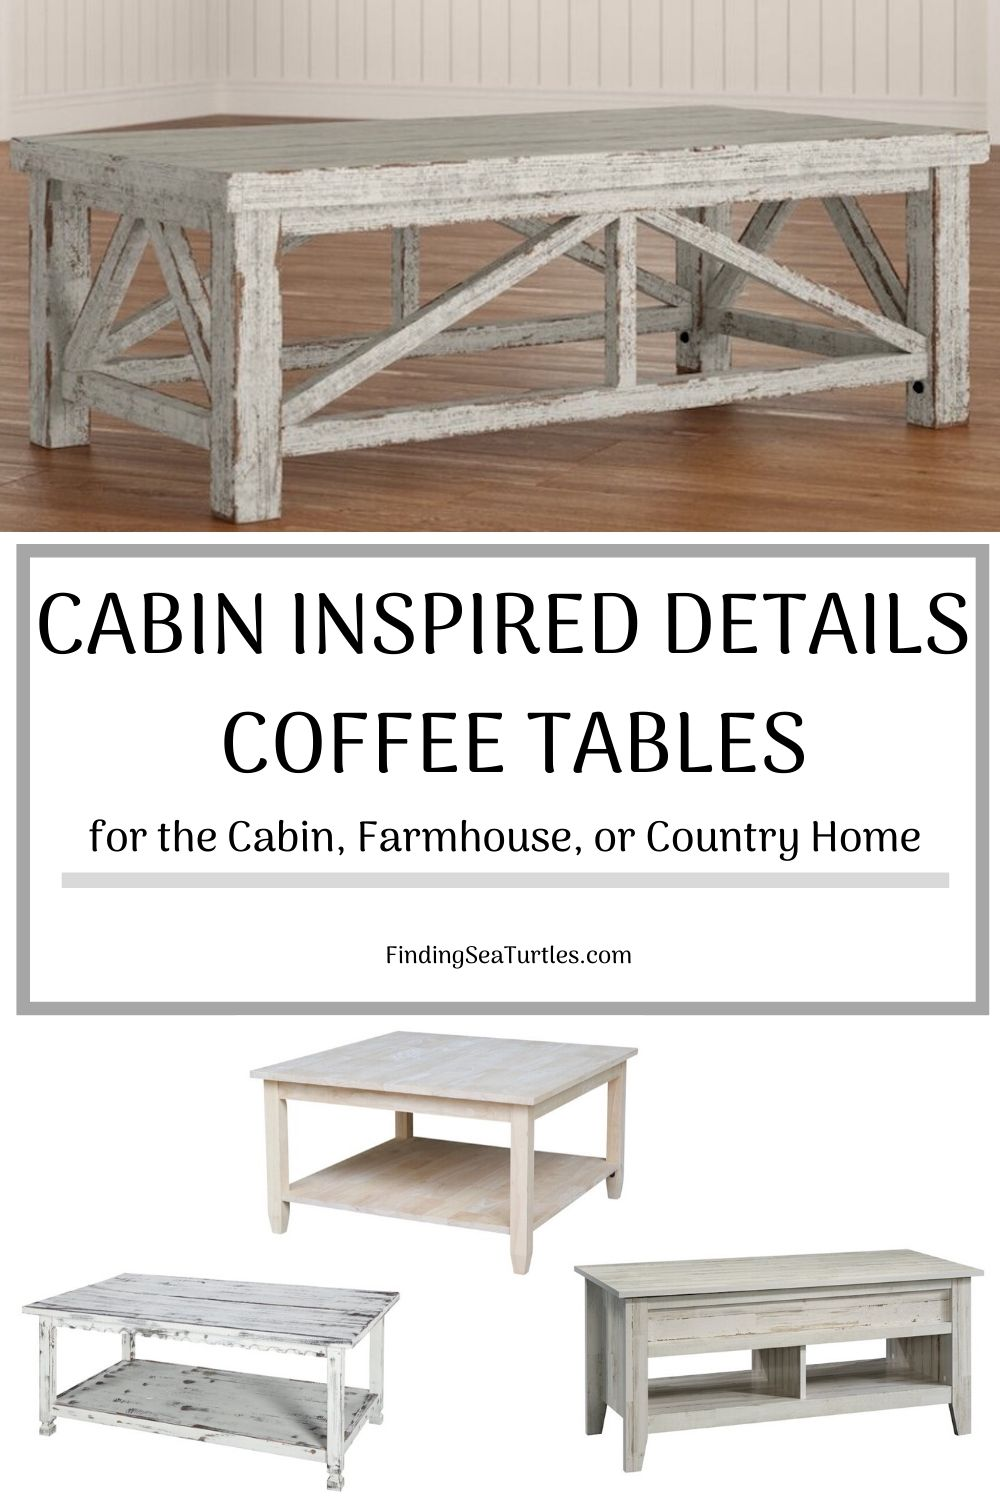 CABIN INSPIRED DETAILS Coffee Tables for the Cabin Farmhouse Country Home #Farmhouse #FarmhouseDecor #Decor #CountryStyleDecor #CoffeeTables #CountryDecor #AffordableFarmhouse